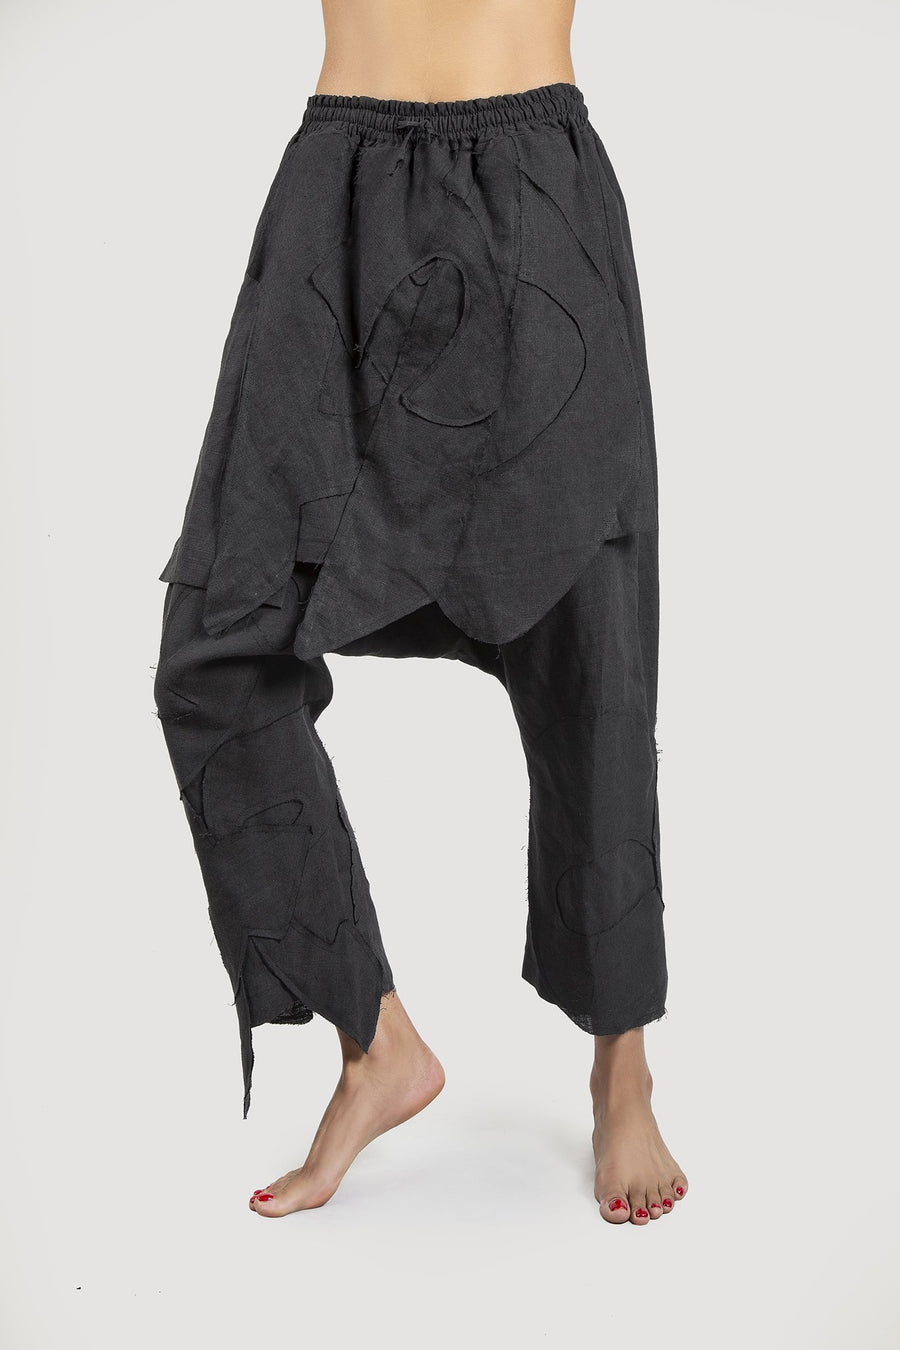 Black Alphabet Trousers